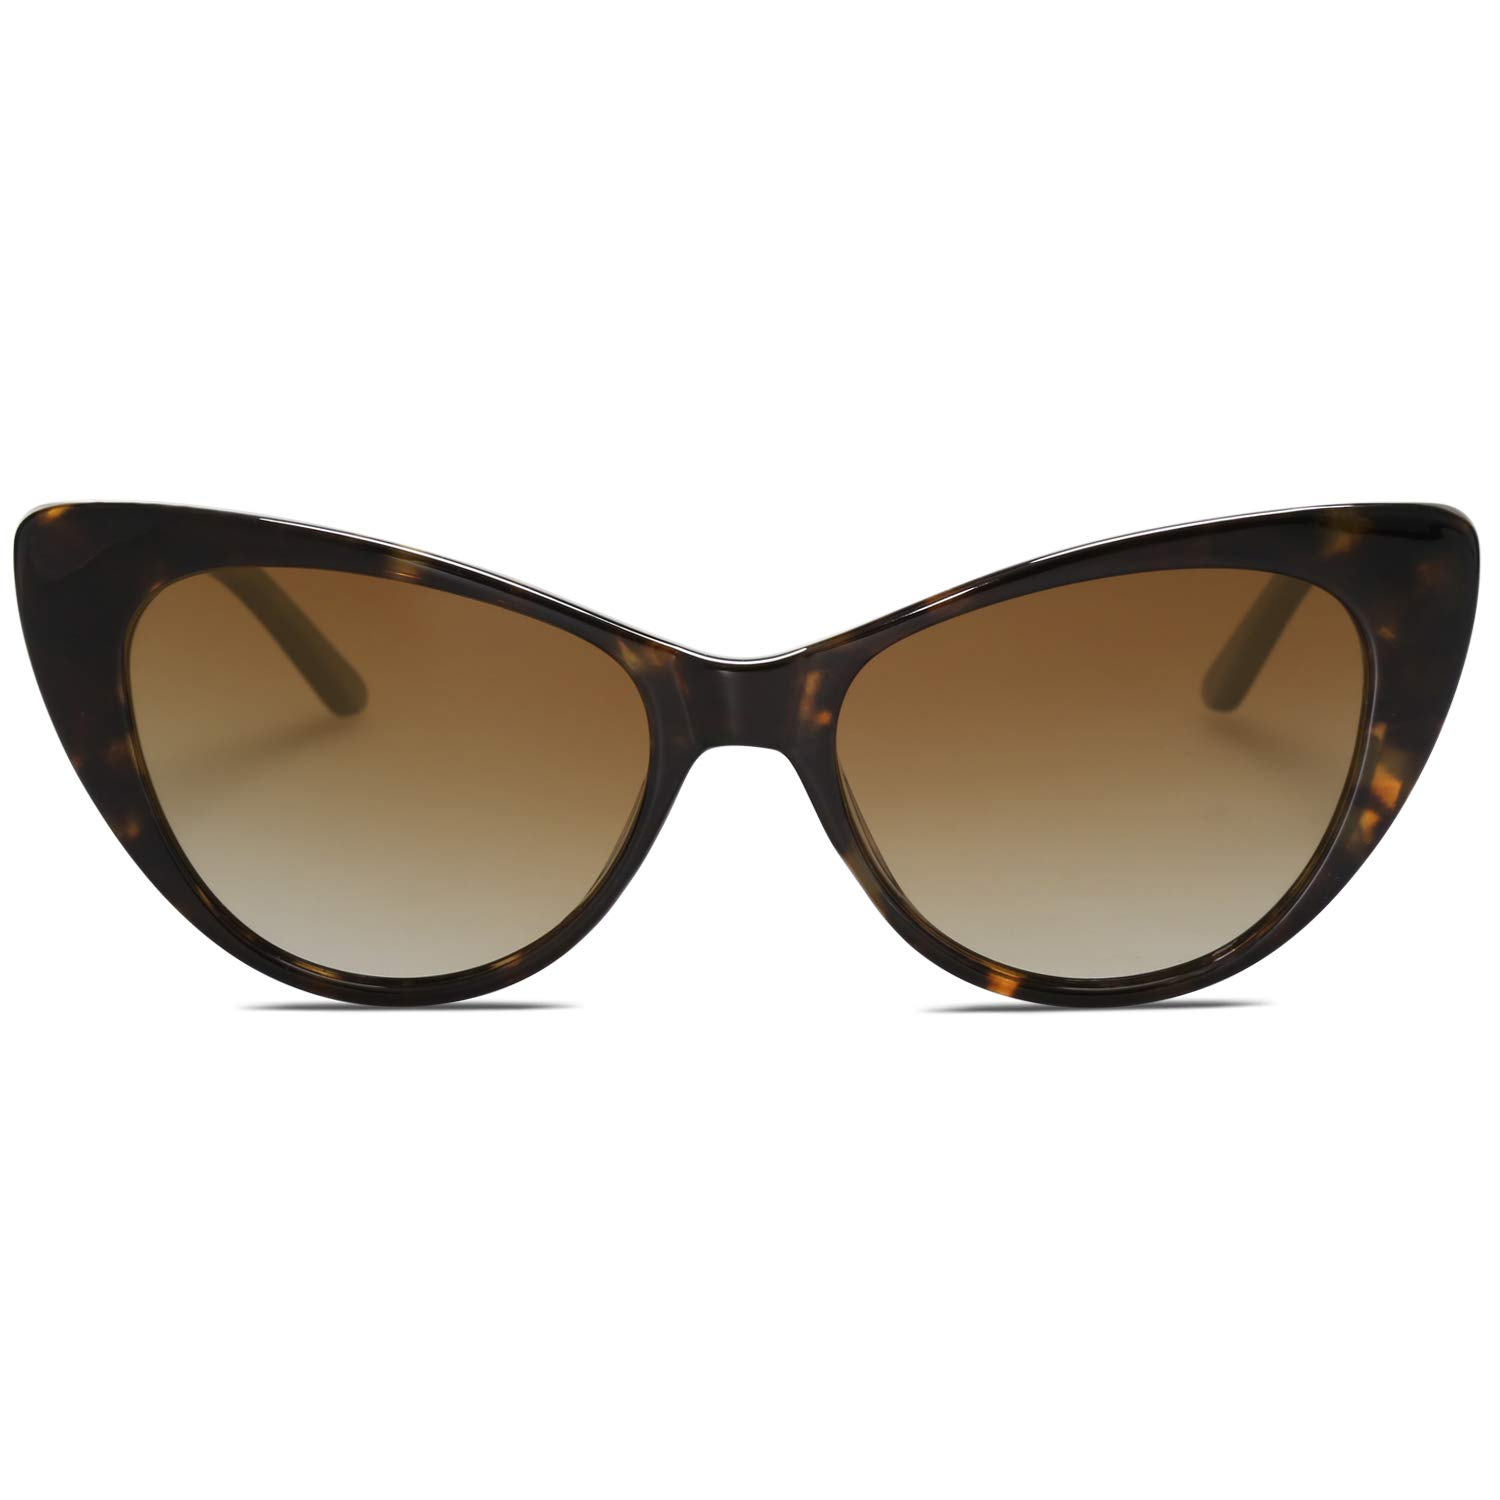 SOJOS Retro Cateye Sunglasses for Women Vintage Clout Goggles Plastic Frame SJ2079 with Brown Tortoise Frame/Gradient Brown Lens by SOJOS